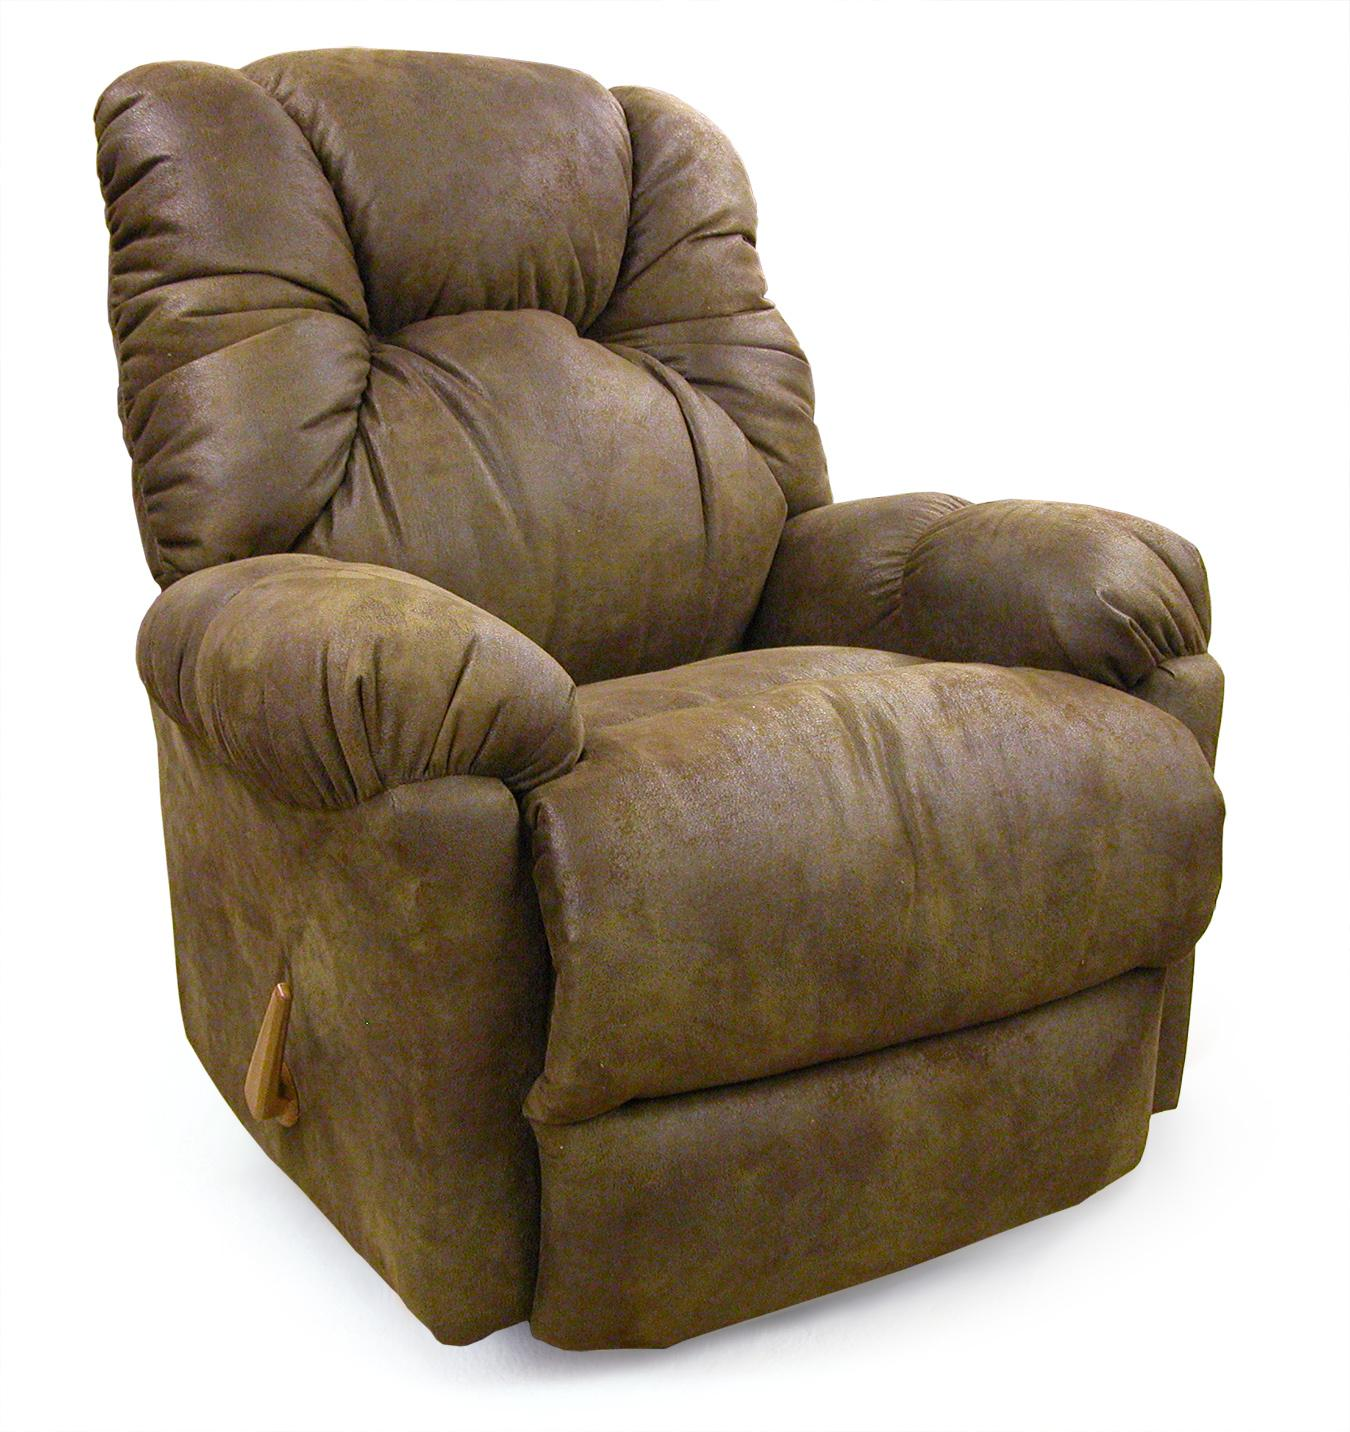 Best Home Furnishings Recliners - Medium Romulus Power Rocker Recliner - Item Number: 9MP57